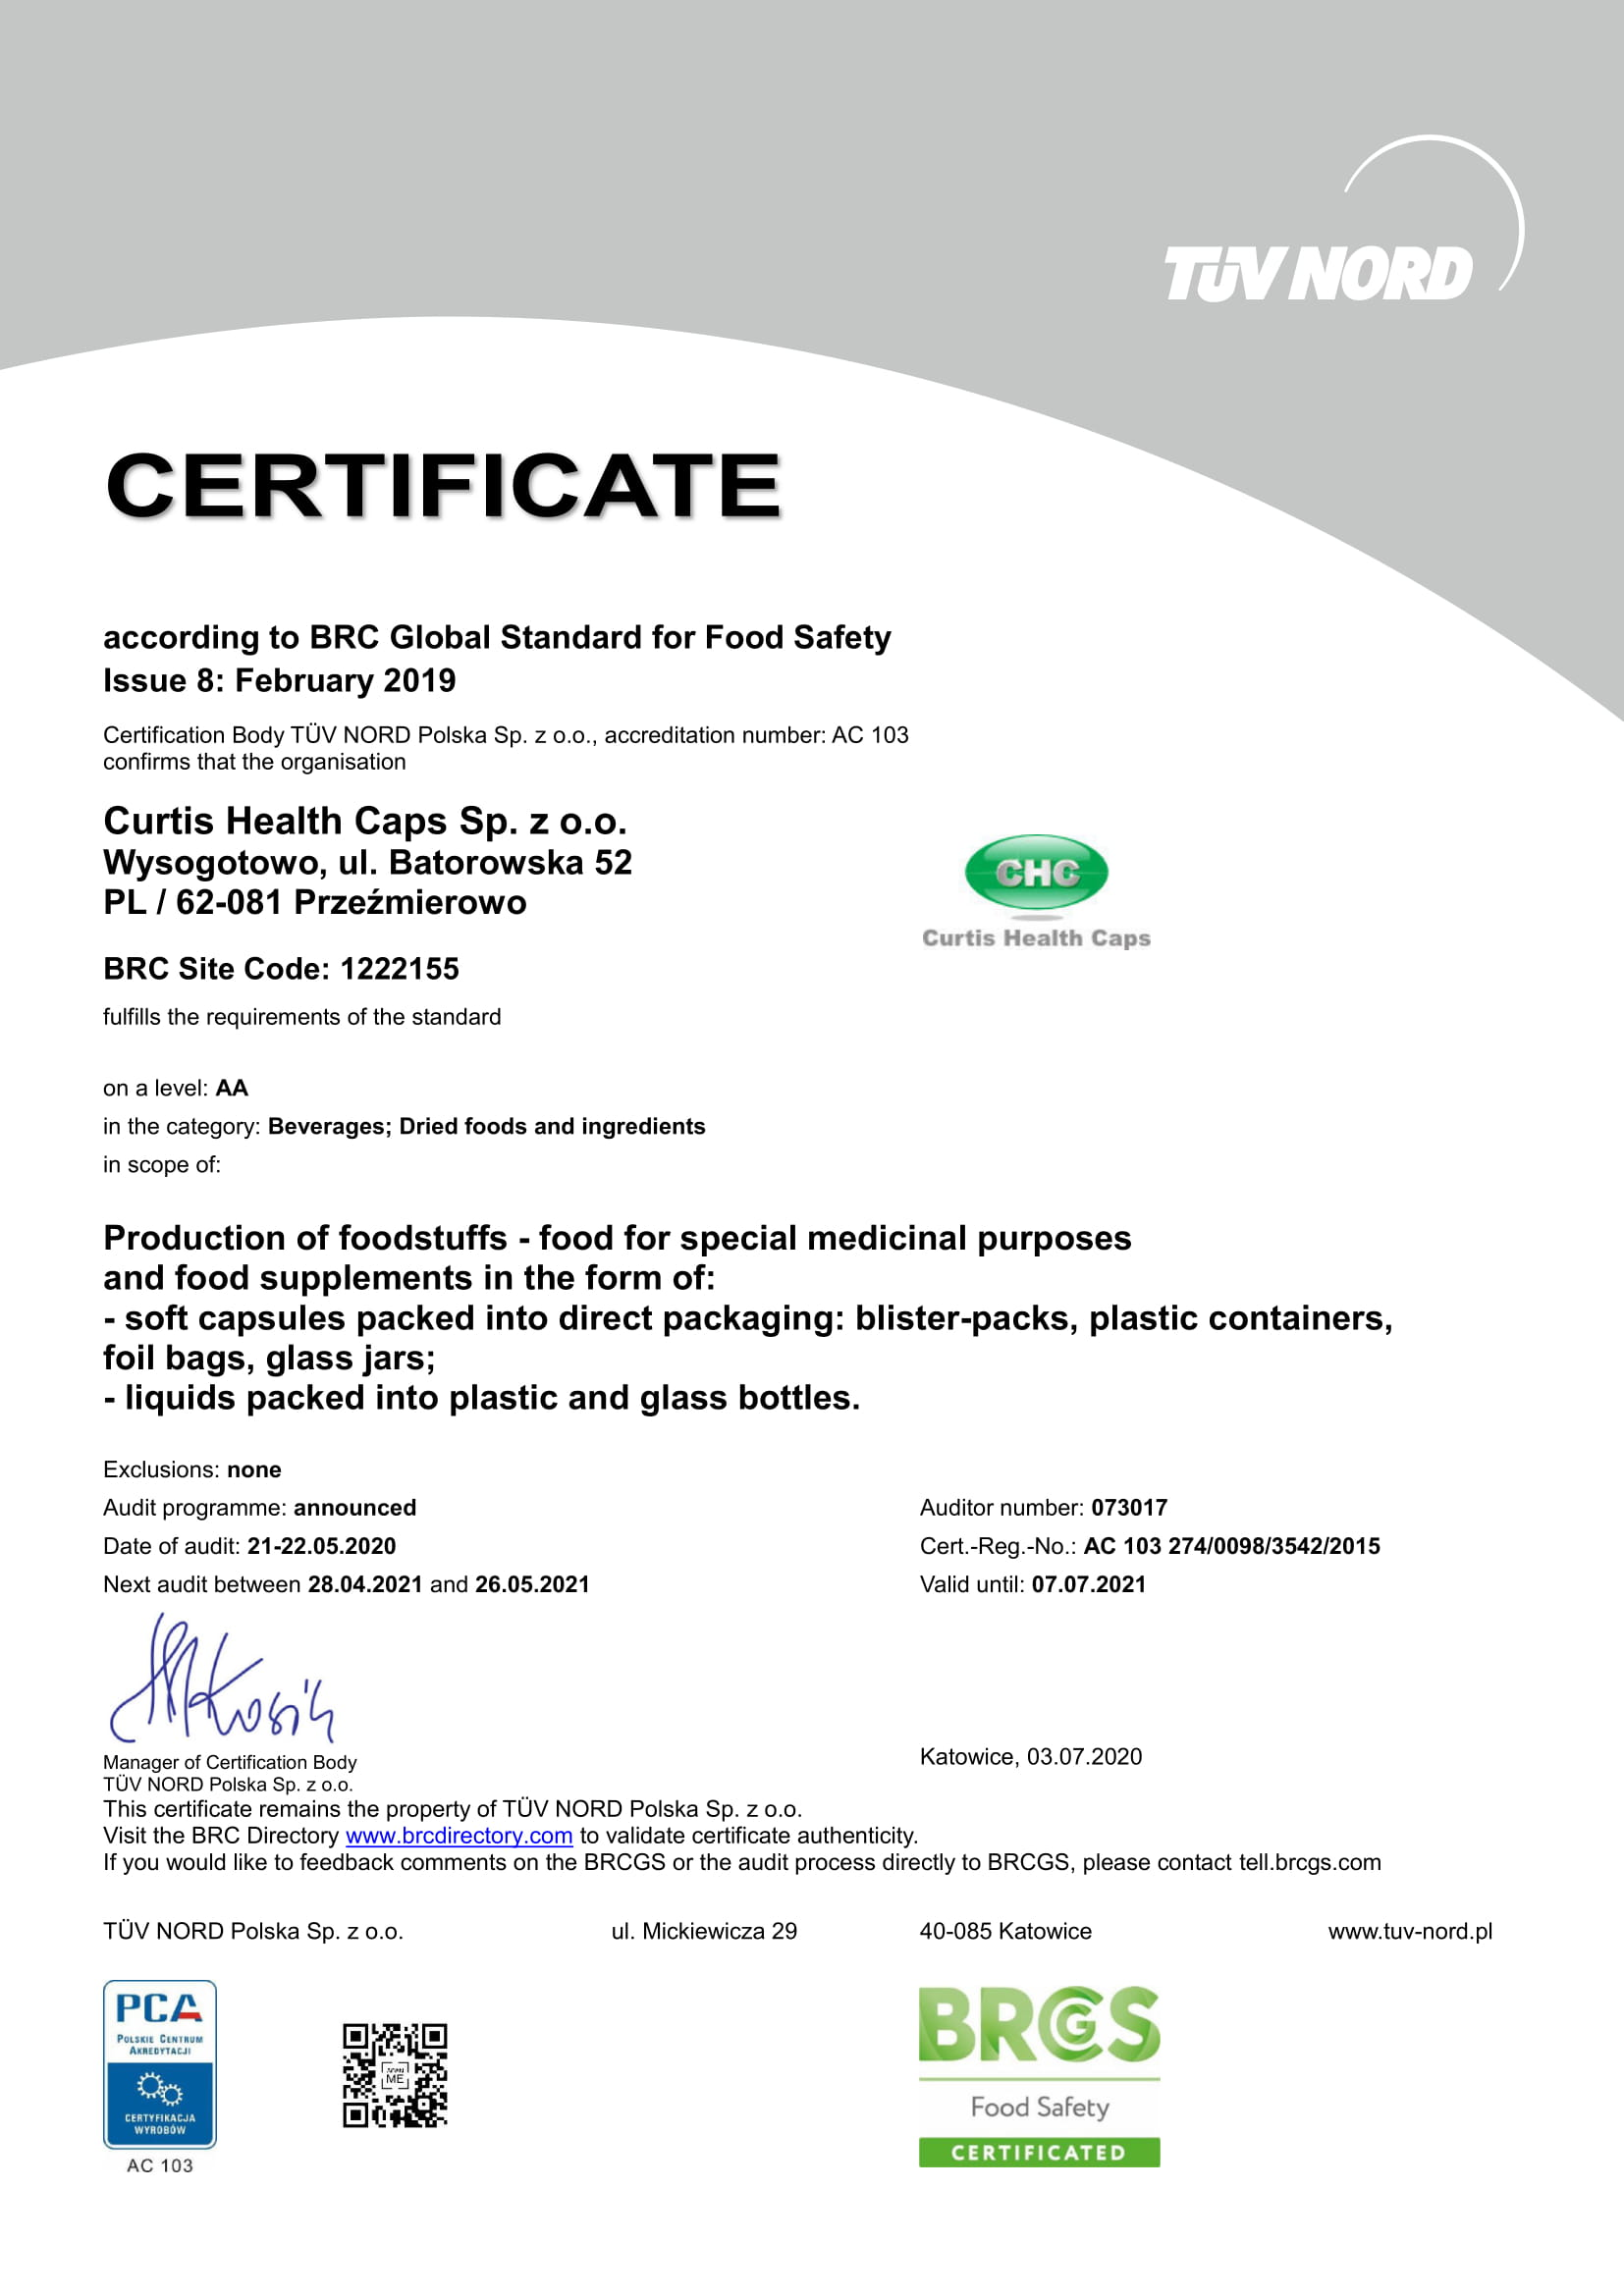 brc chc certificates 8t safety standard global edition